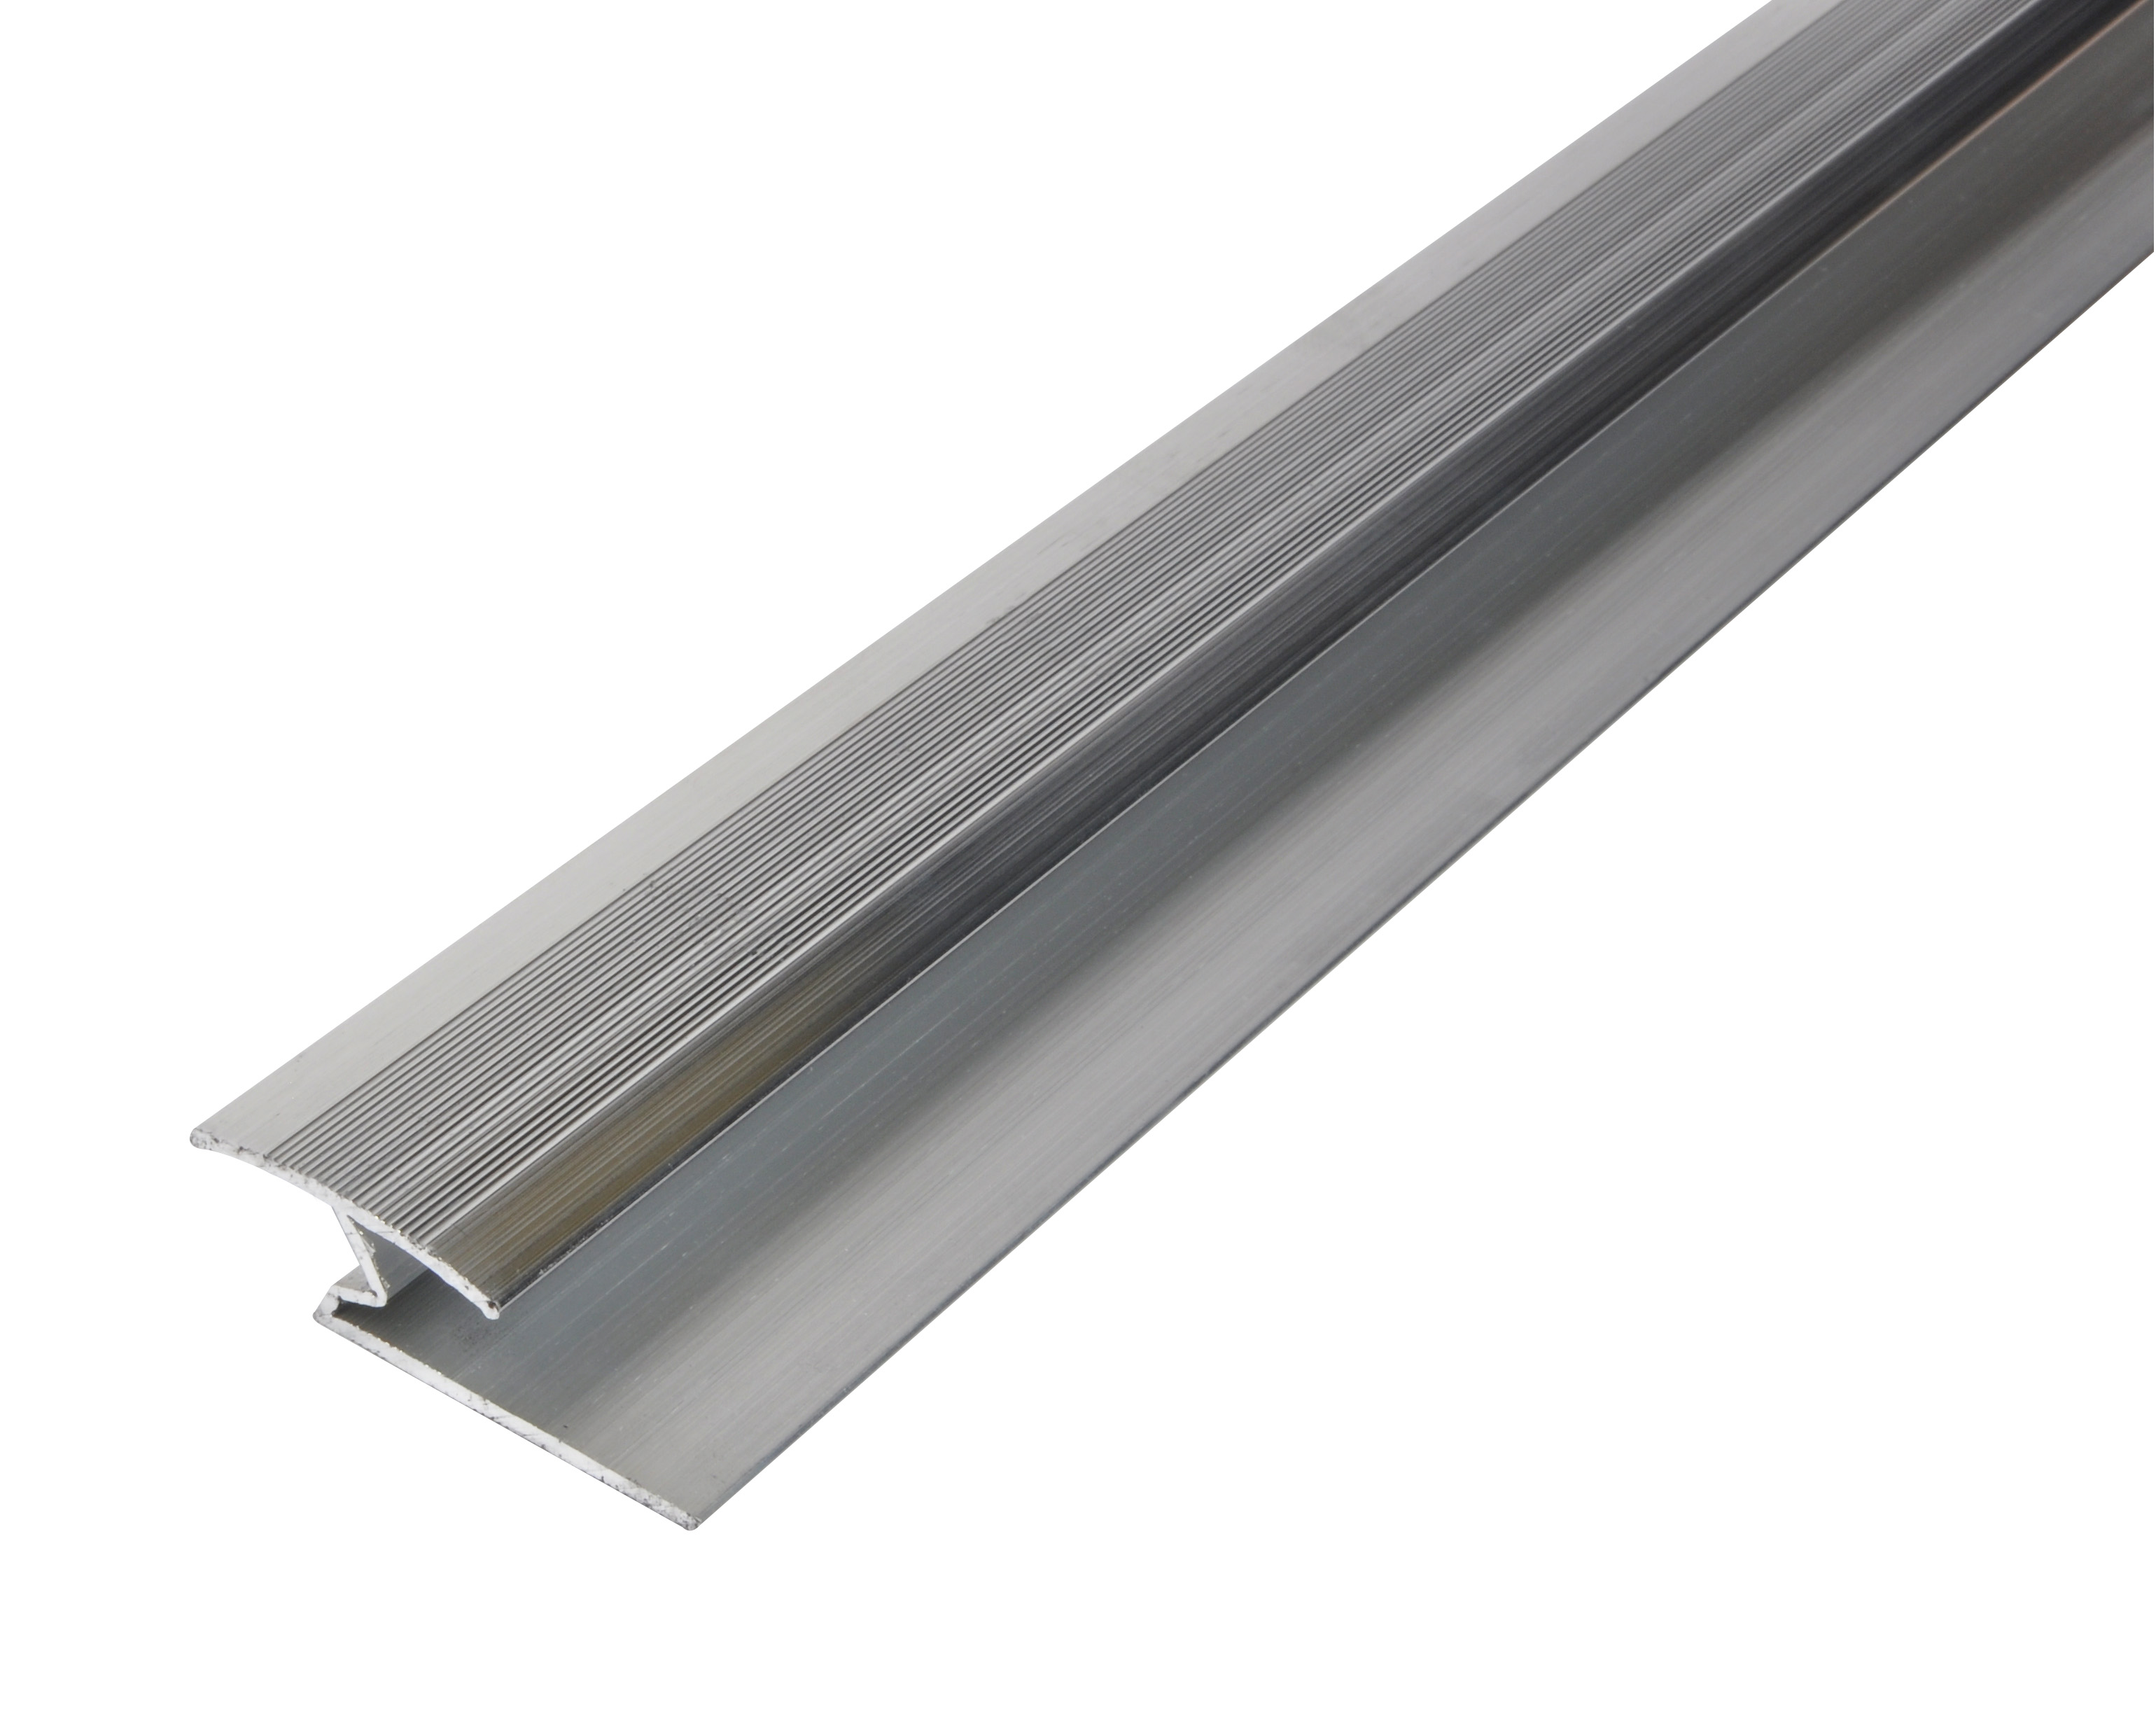 Laminate to Laminate Cover Strip Ceramic Silver 900mm